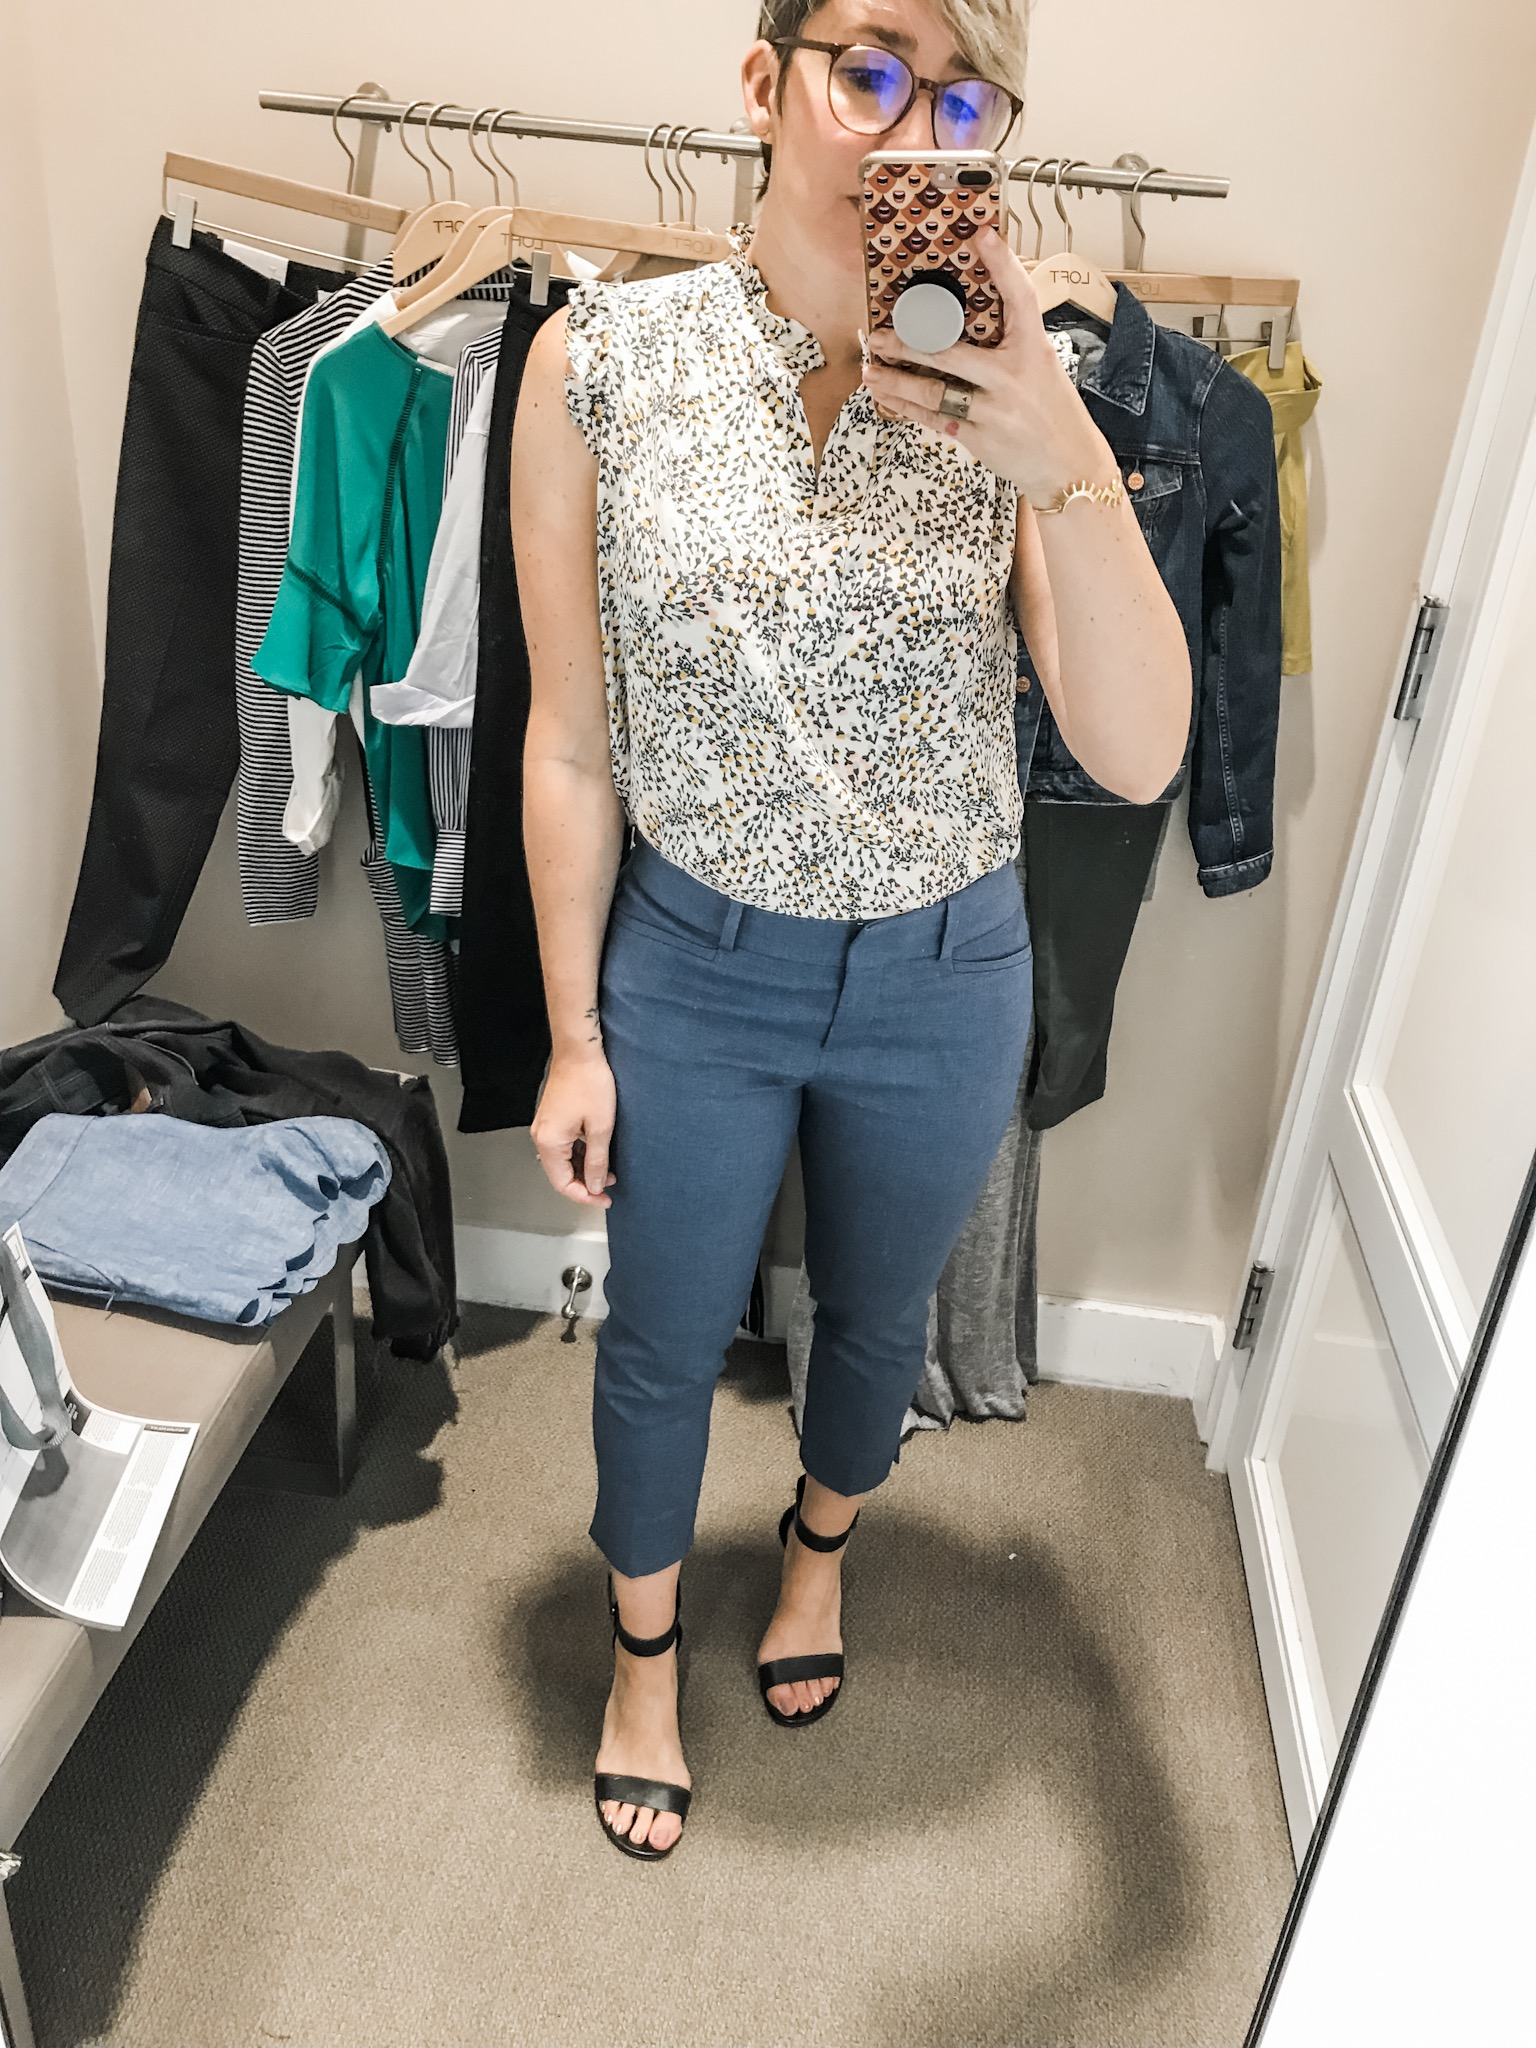 It's definitely time for a round of #dressingroomselfies from LOFT. Cute spring & summer outfit pieces are on order — for both work & weekend. Let's go.